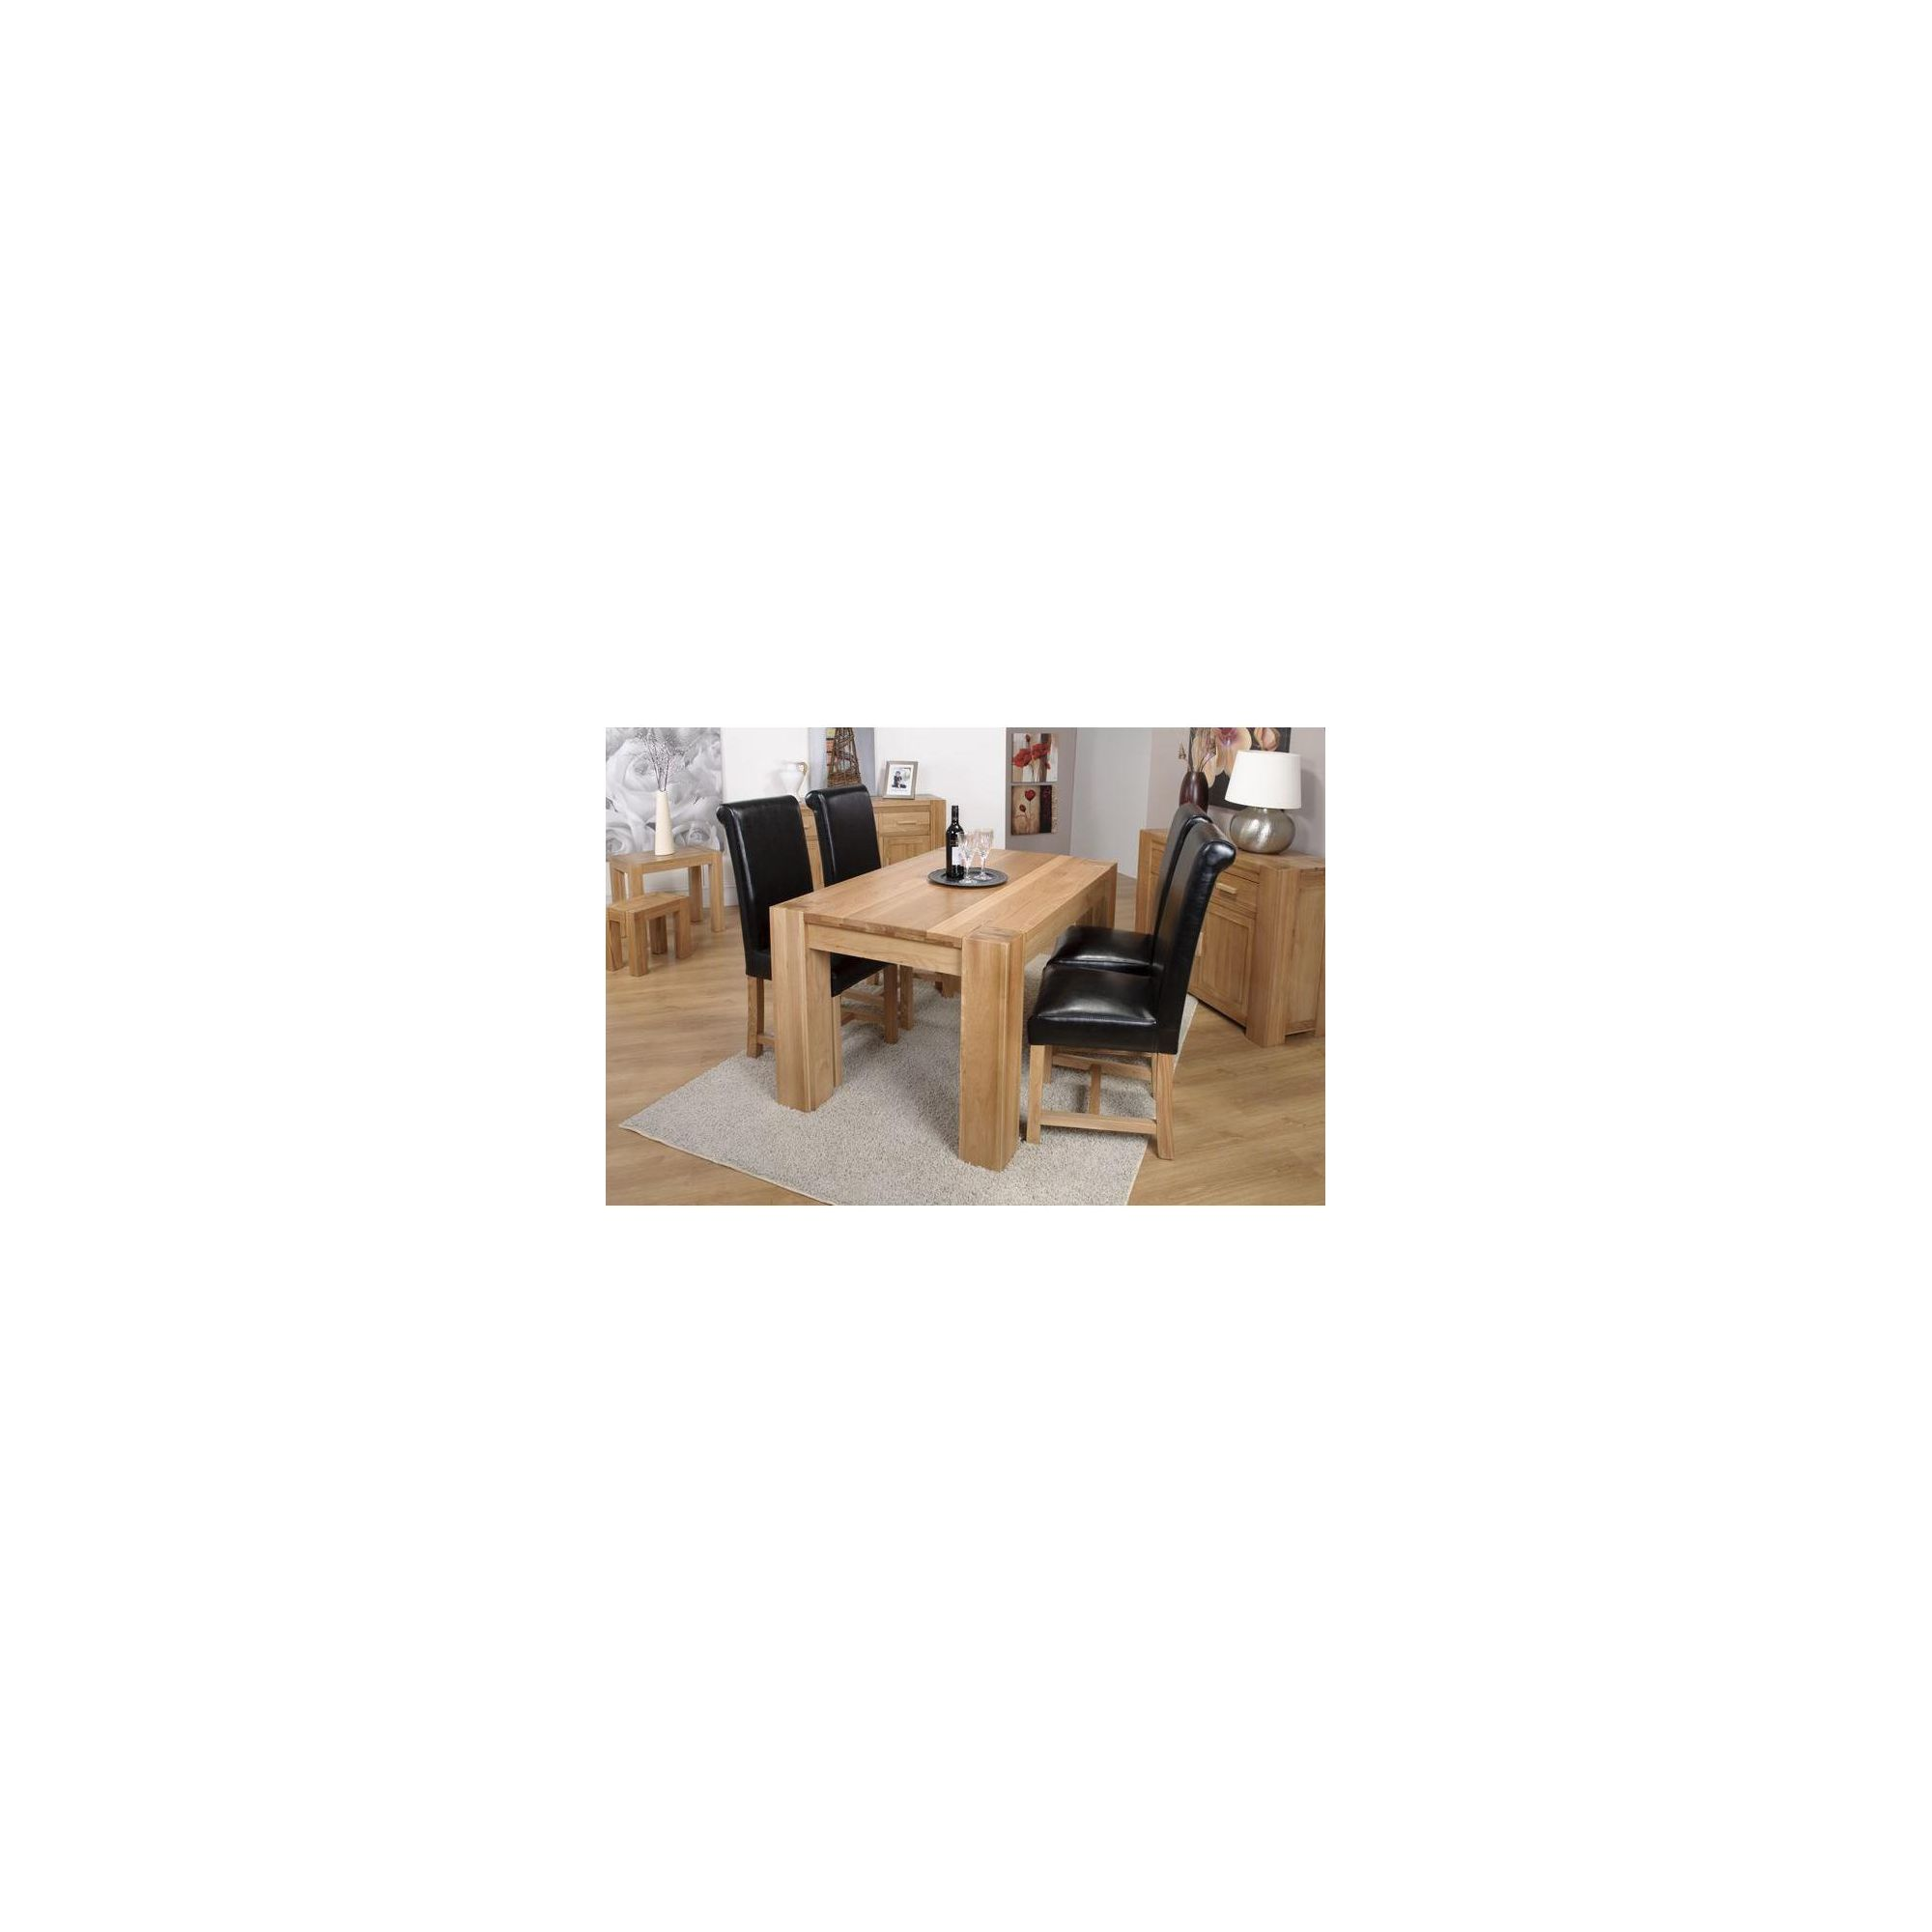 Shankar Enterprises Oslo Dining Table - 140cm W x 90cm D